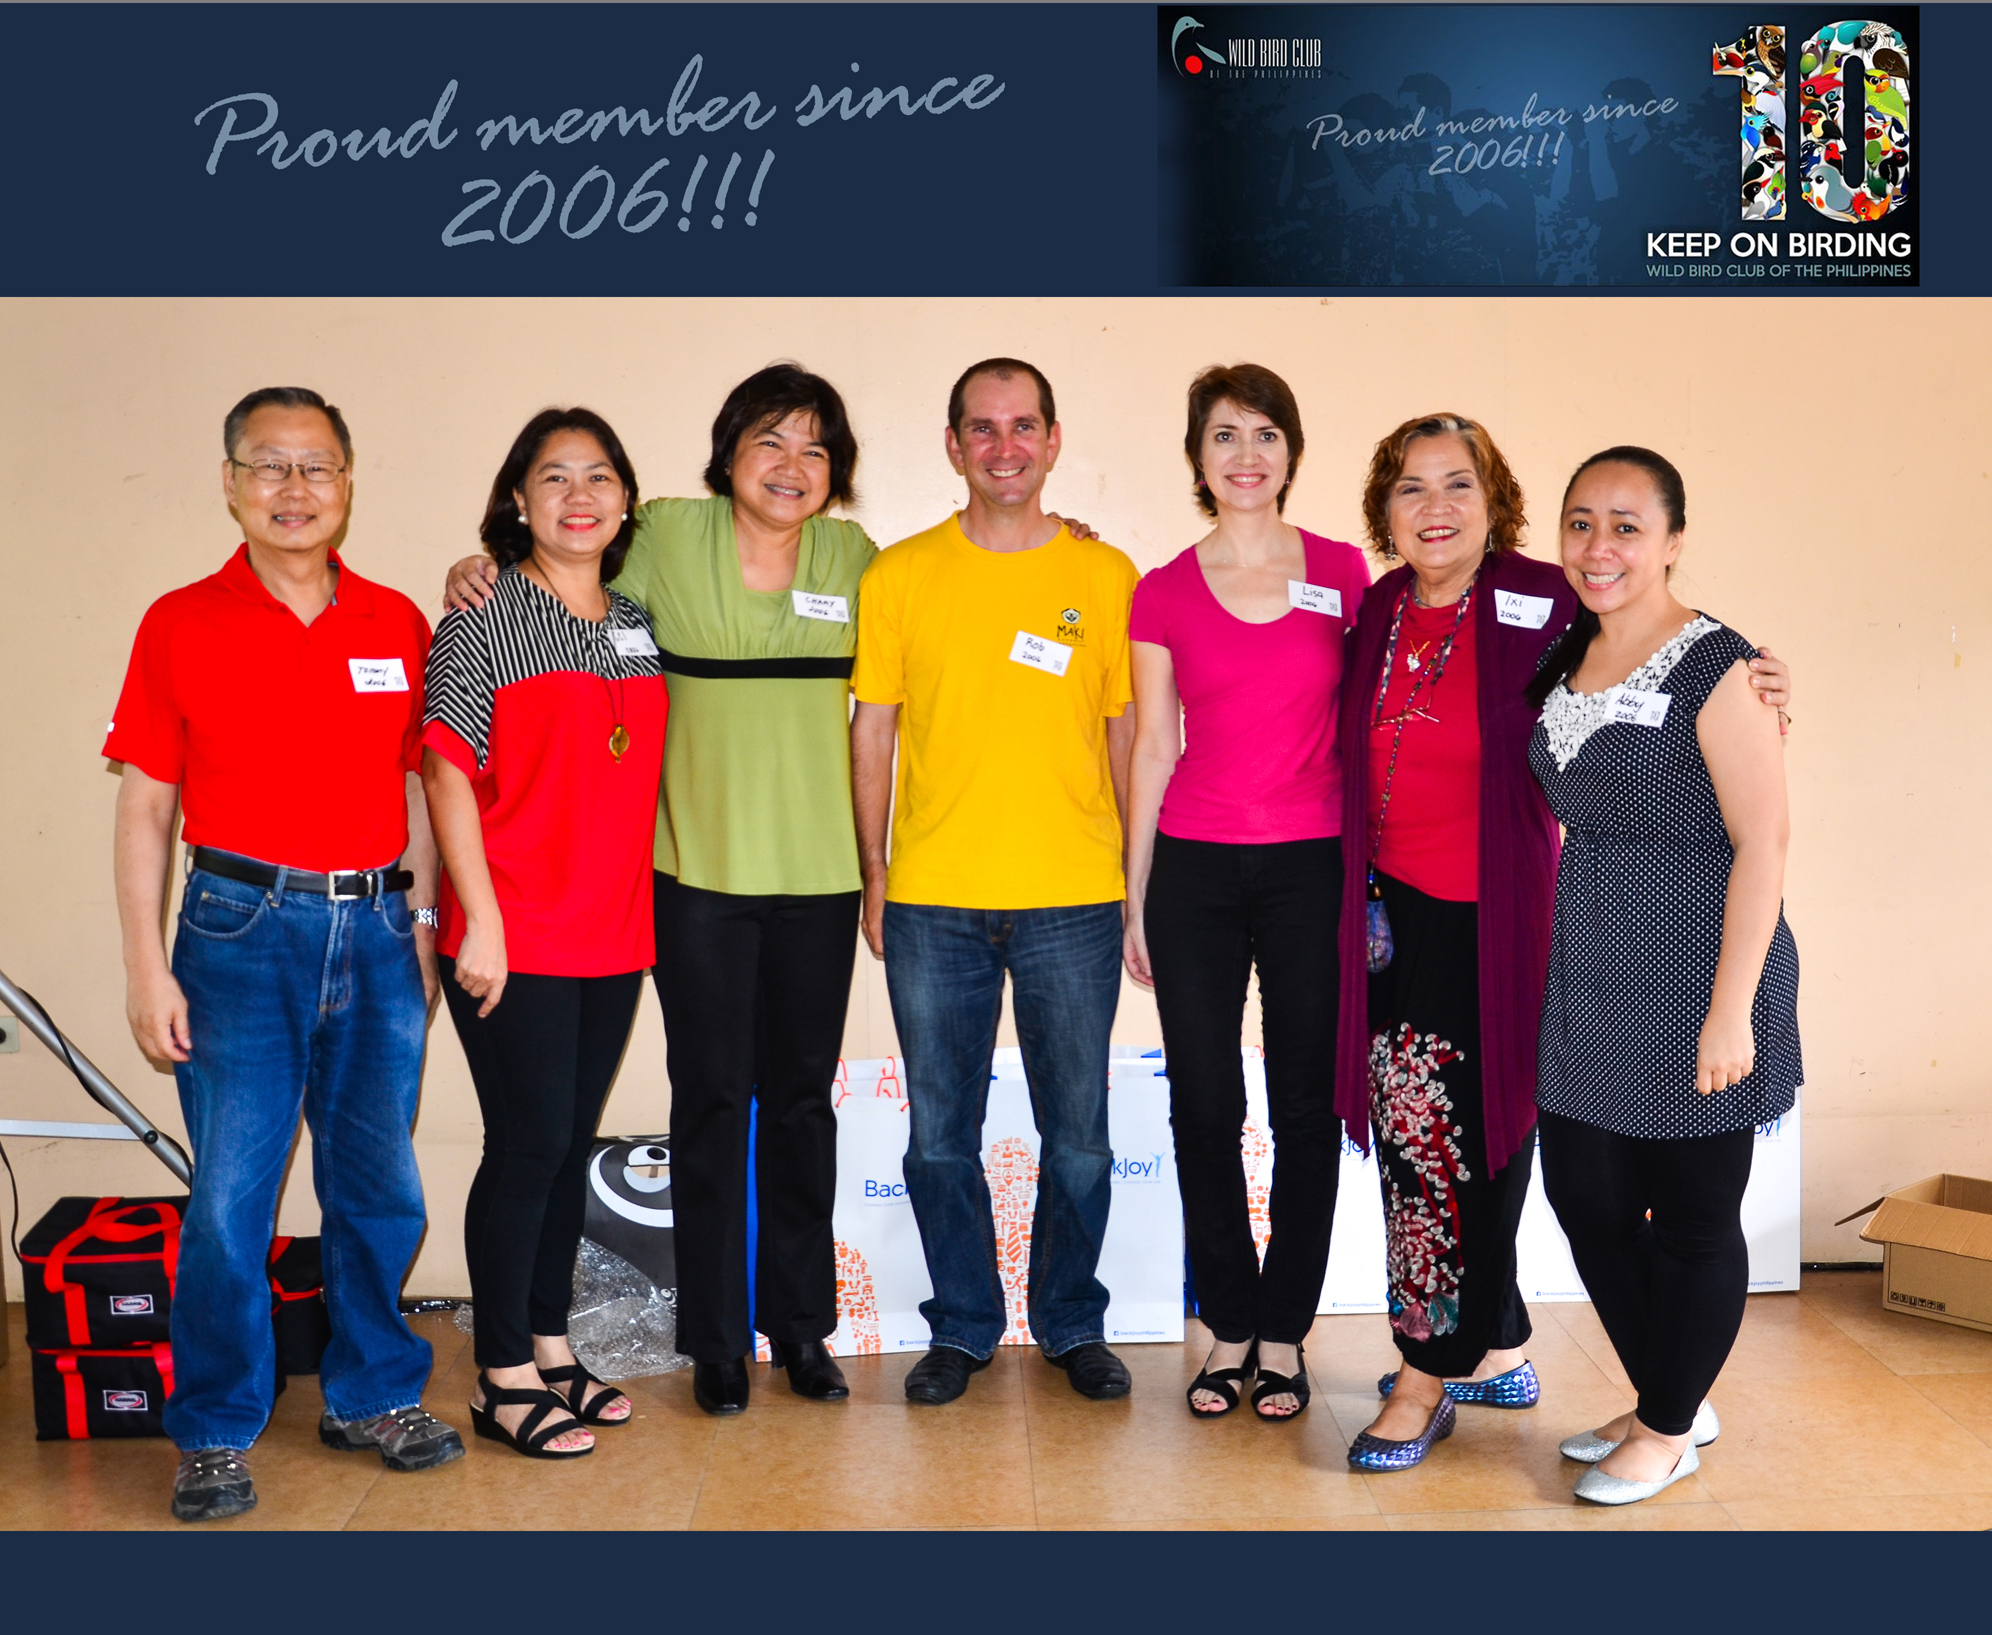 WBCP Batch 2006: Tommy Tan, ___, Chary____, Rob Hutchinson, Lisa______,  Ixi Mapua, Abby Santos. Photo by Marites Falcon.